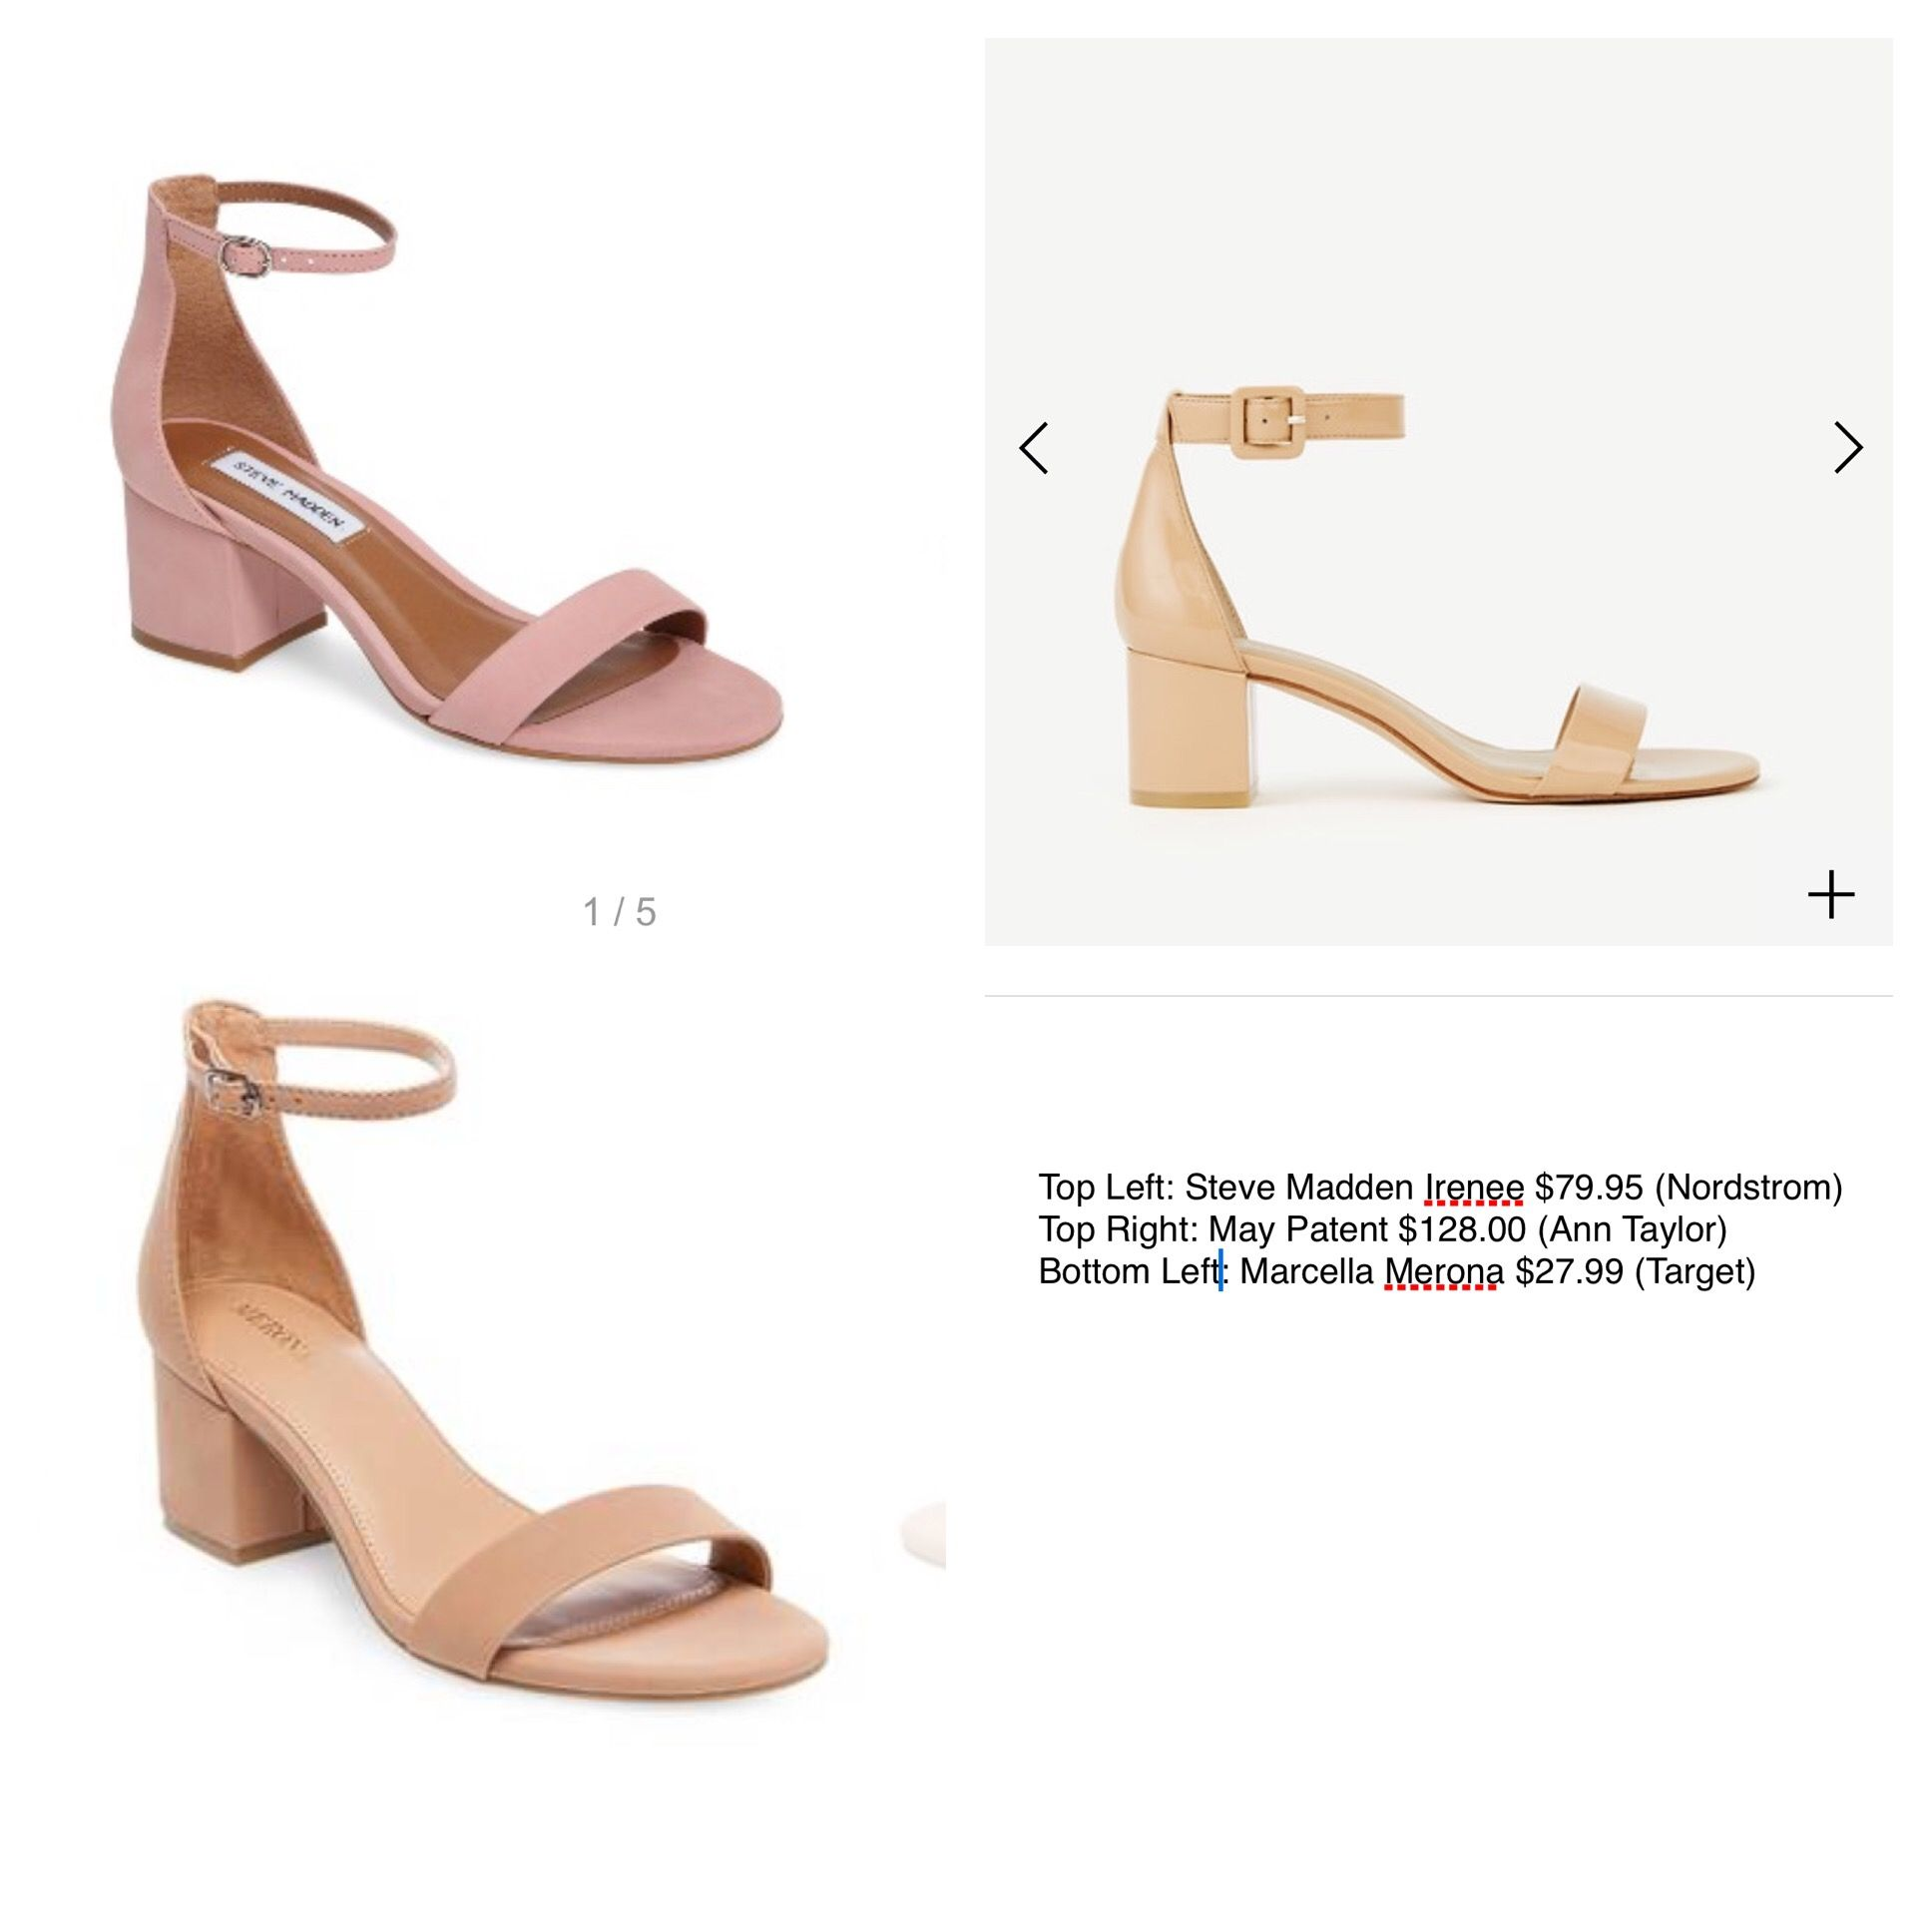 cc4e5094e30 I m obsessed with these low block heel sandals. Three price points. Both  Steve Madden and Target have other colors available.